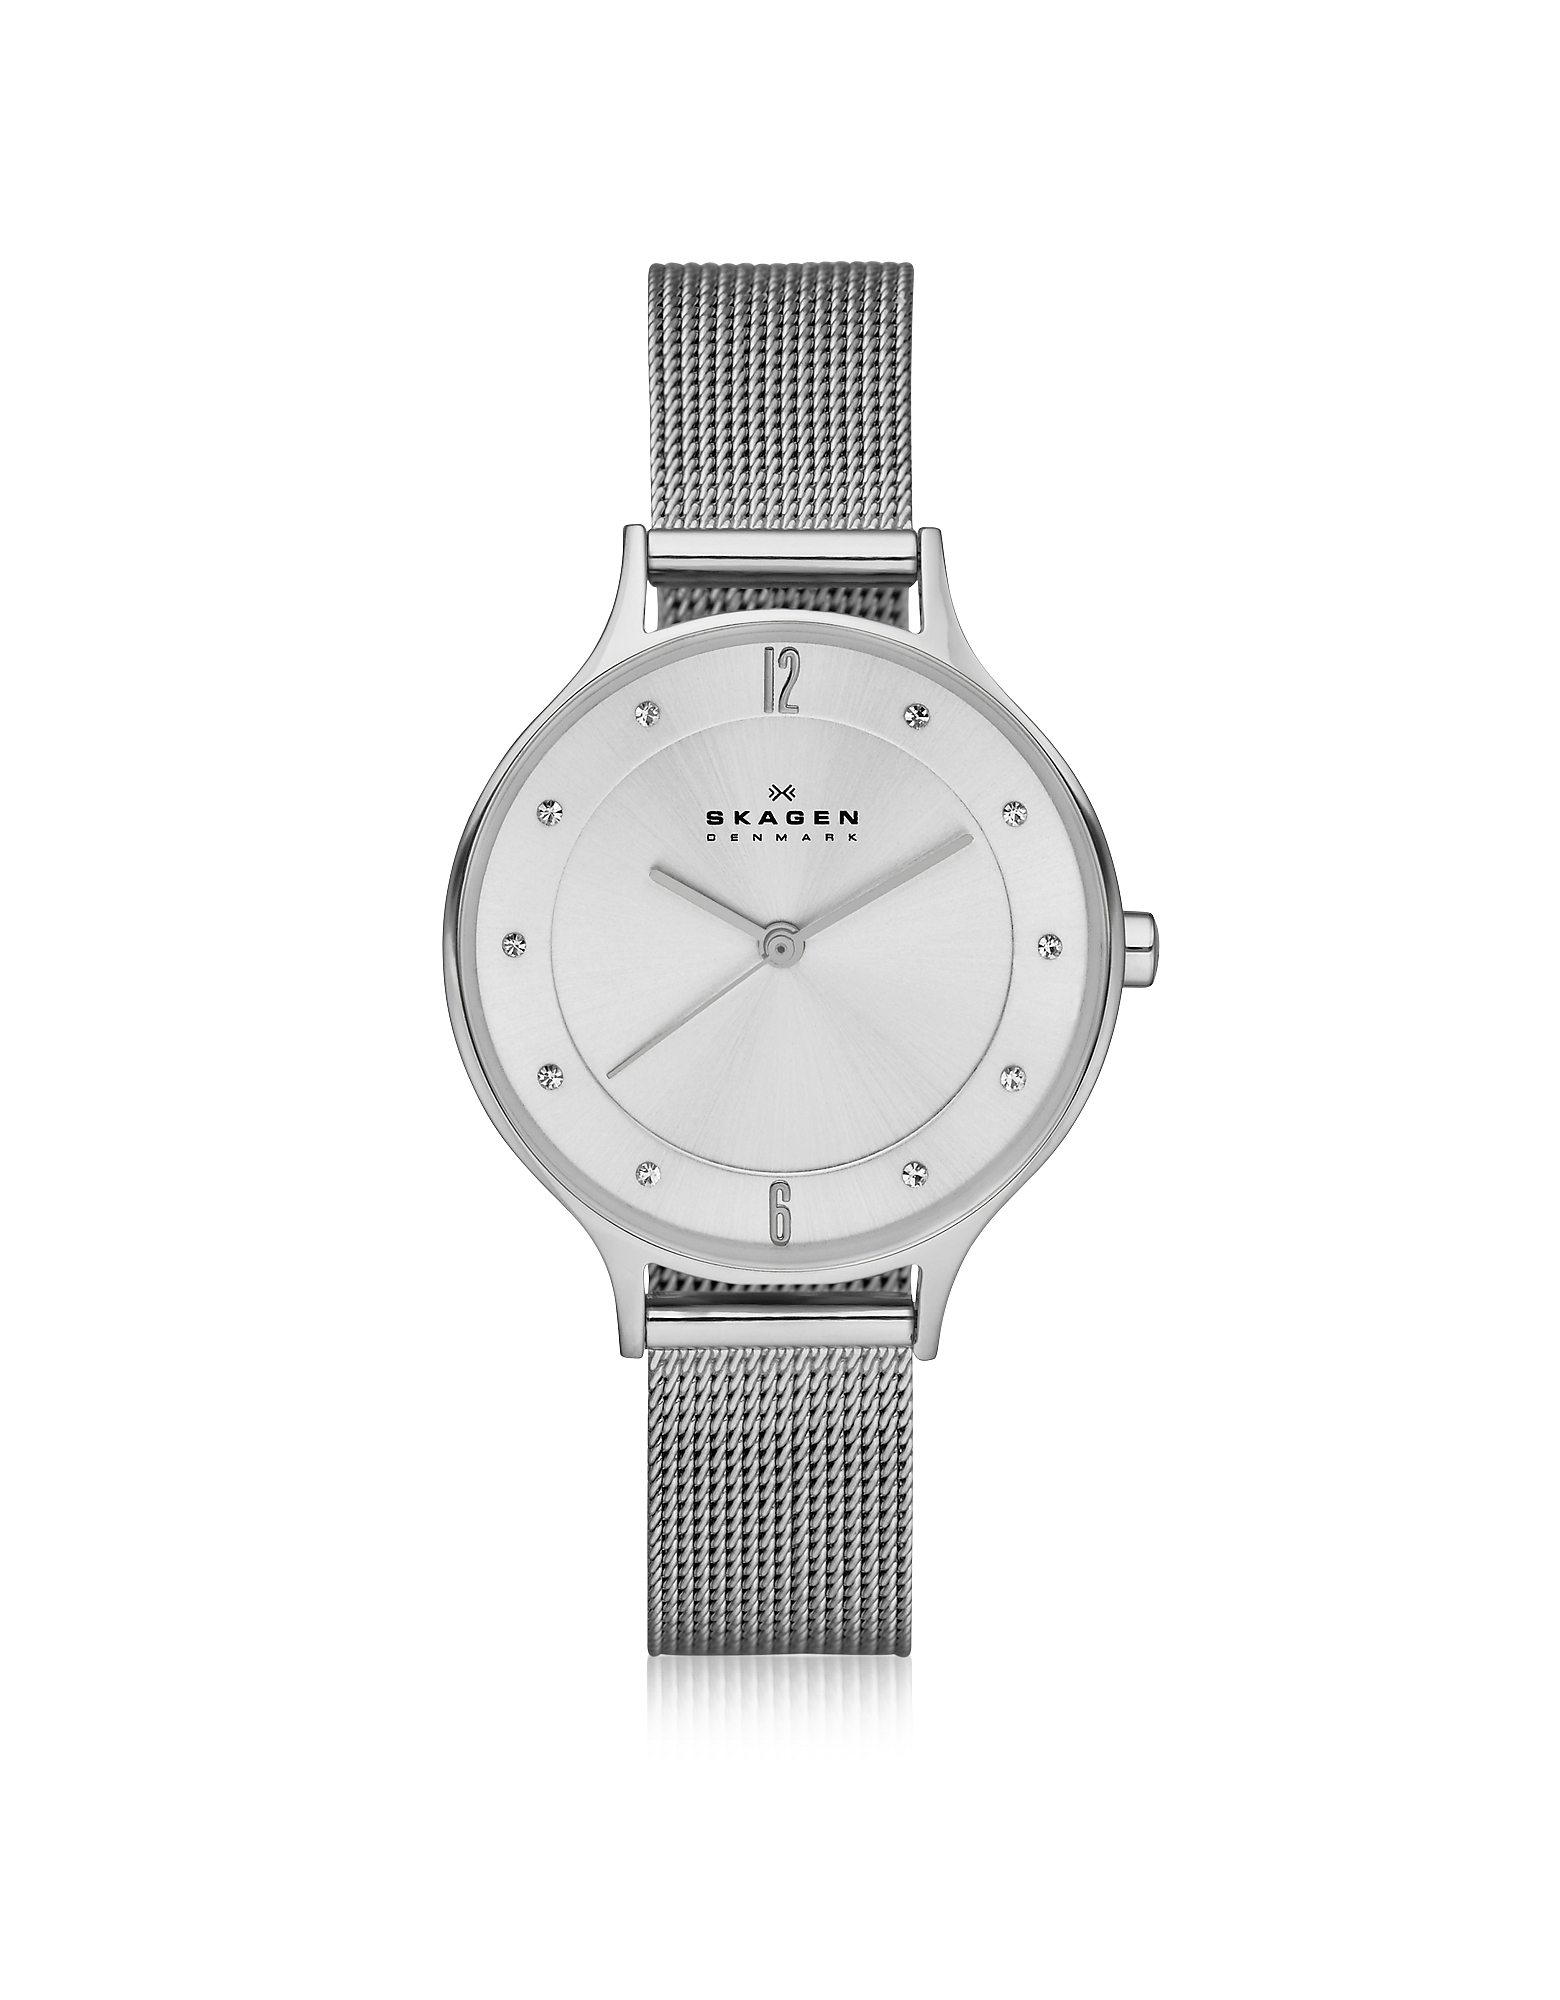 Skagen Women's Watches, Anita Silvertone Stainless Steel Women's Watch w/Mesh Bracelet Band